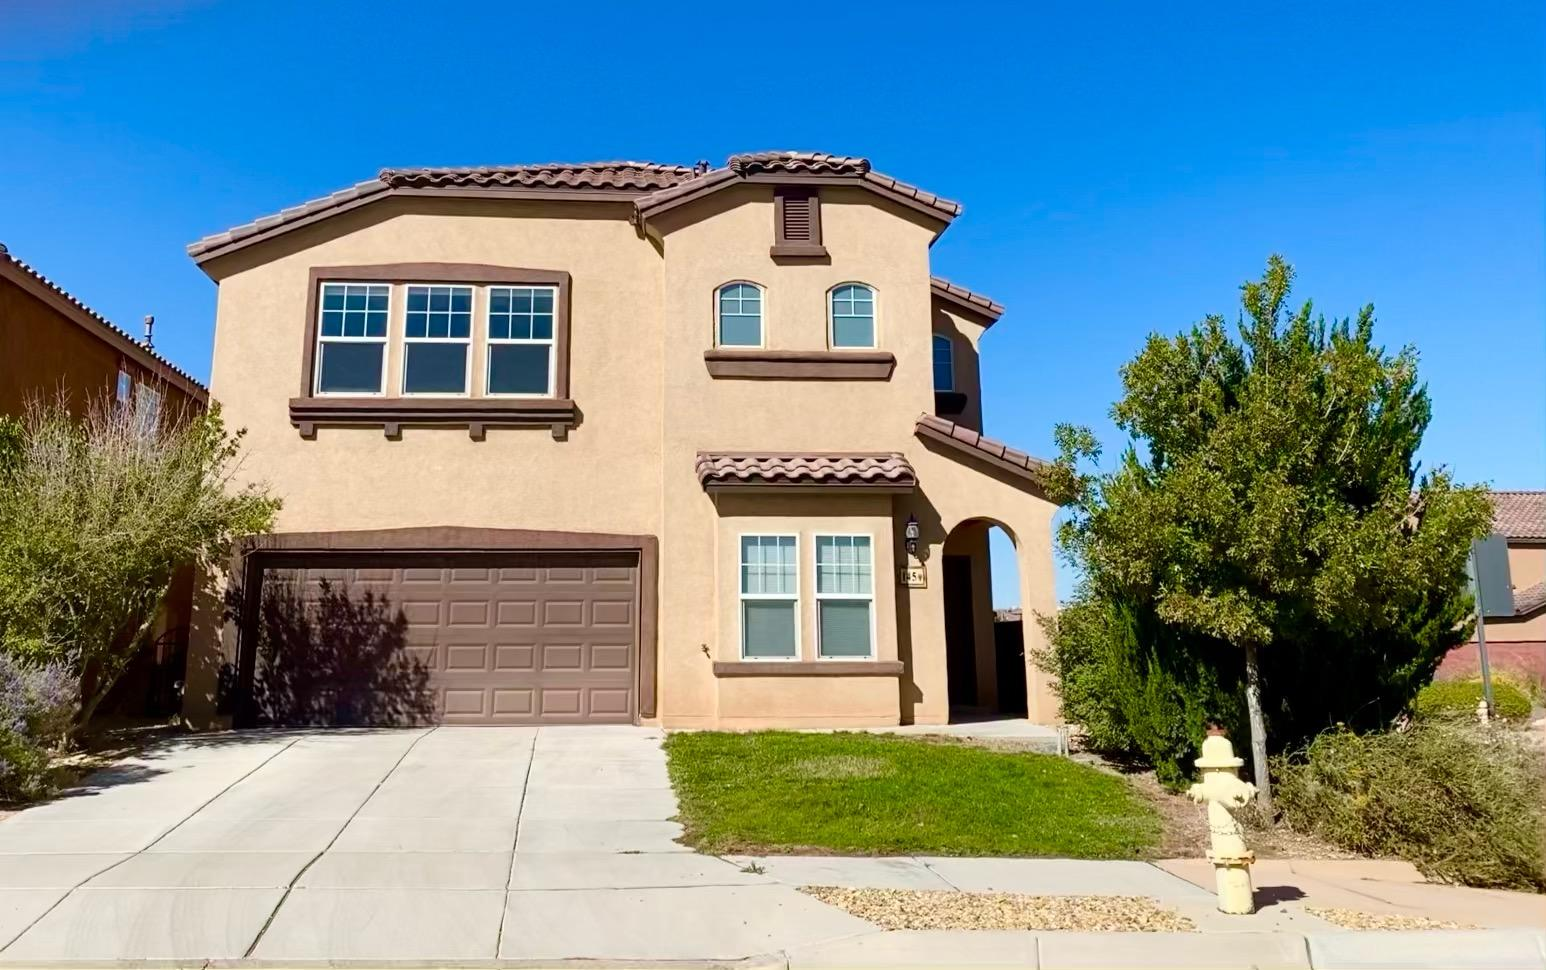 Light and Bright and super Gorgeous! Located in highly desirable Loma Colorado neighborhood this home has lots of windows, Cathedral Ceilings in the living room, beautiful tile floors throughout and thoughtful attention to design details. Kitchen has granite countertops, island and walk in pantry! Room in front of house could be family room/office/play room or 4th bedroom. Upstairs has 3 BR's and the laundry room with washer/dryer included! Master is very spacious and bright with huge full bathroom with sunken tub, separate shower, his/hers sinks and large walk in closet. Lovely backyard with patio and easy care xeriscape.